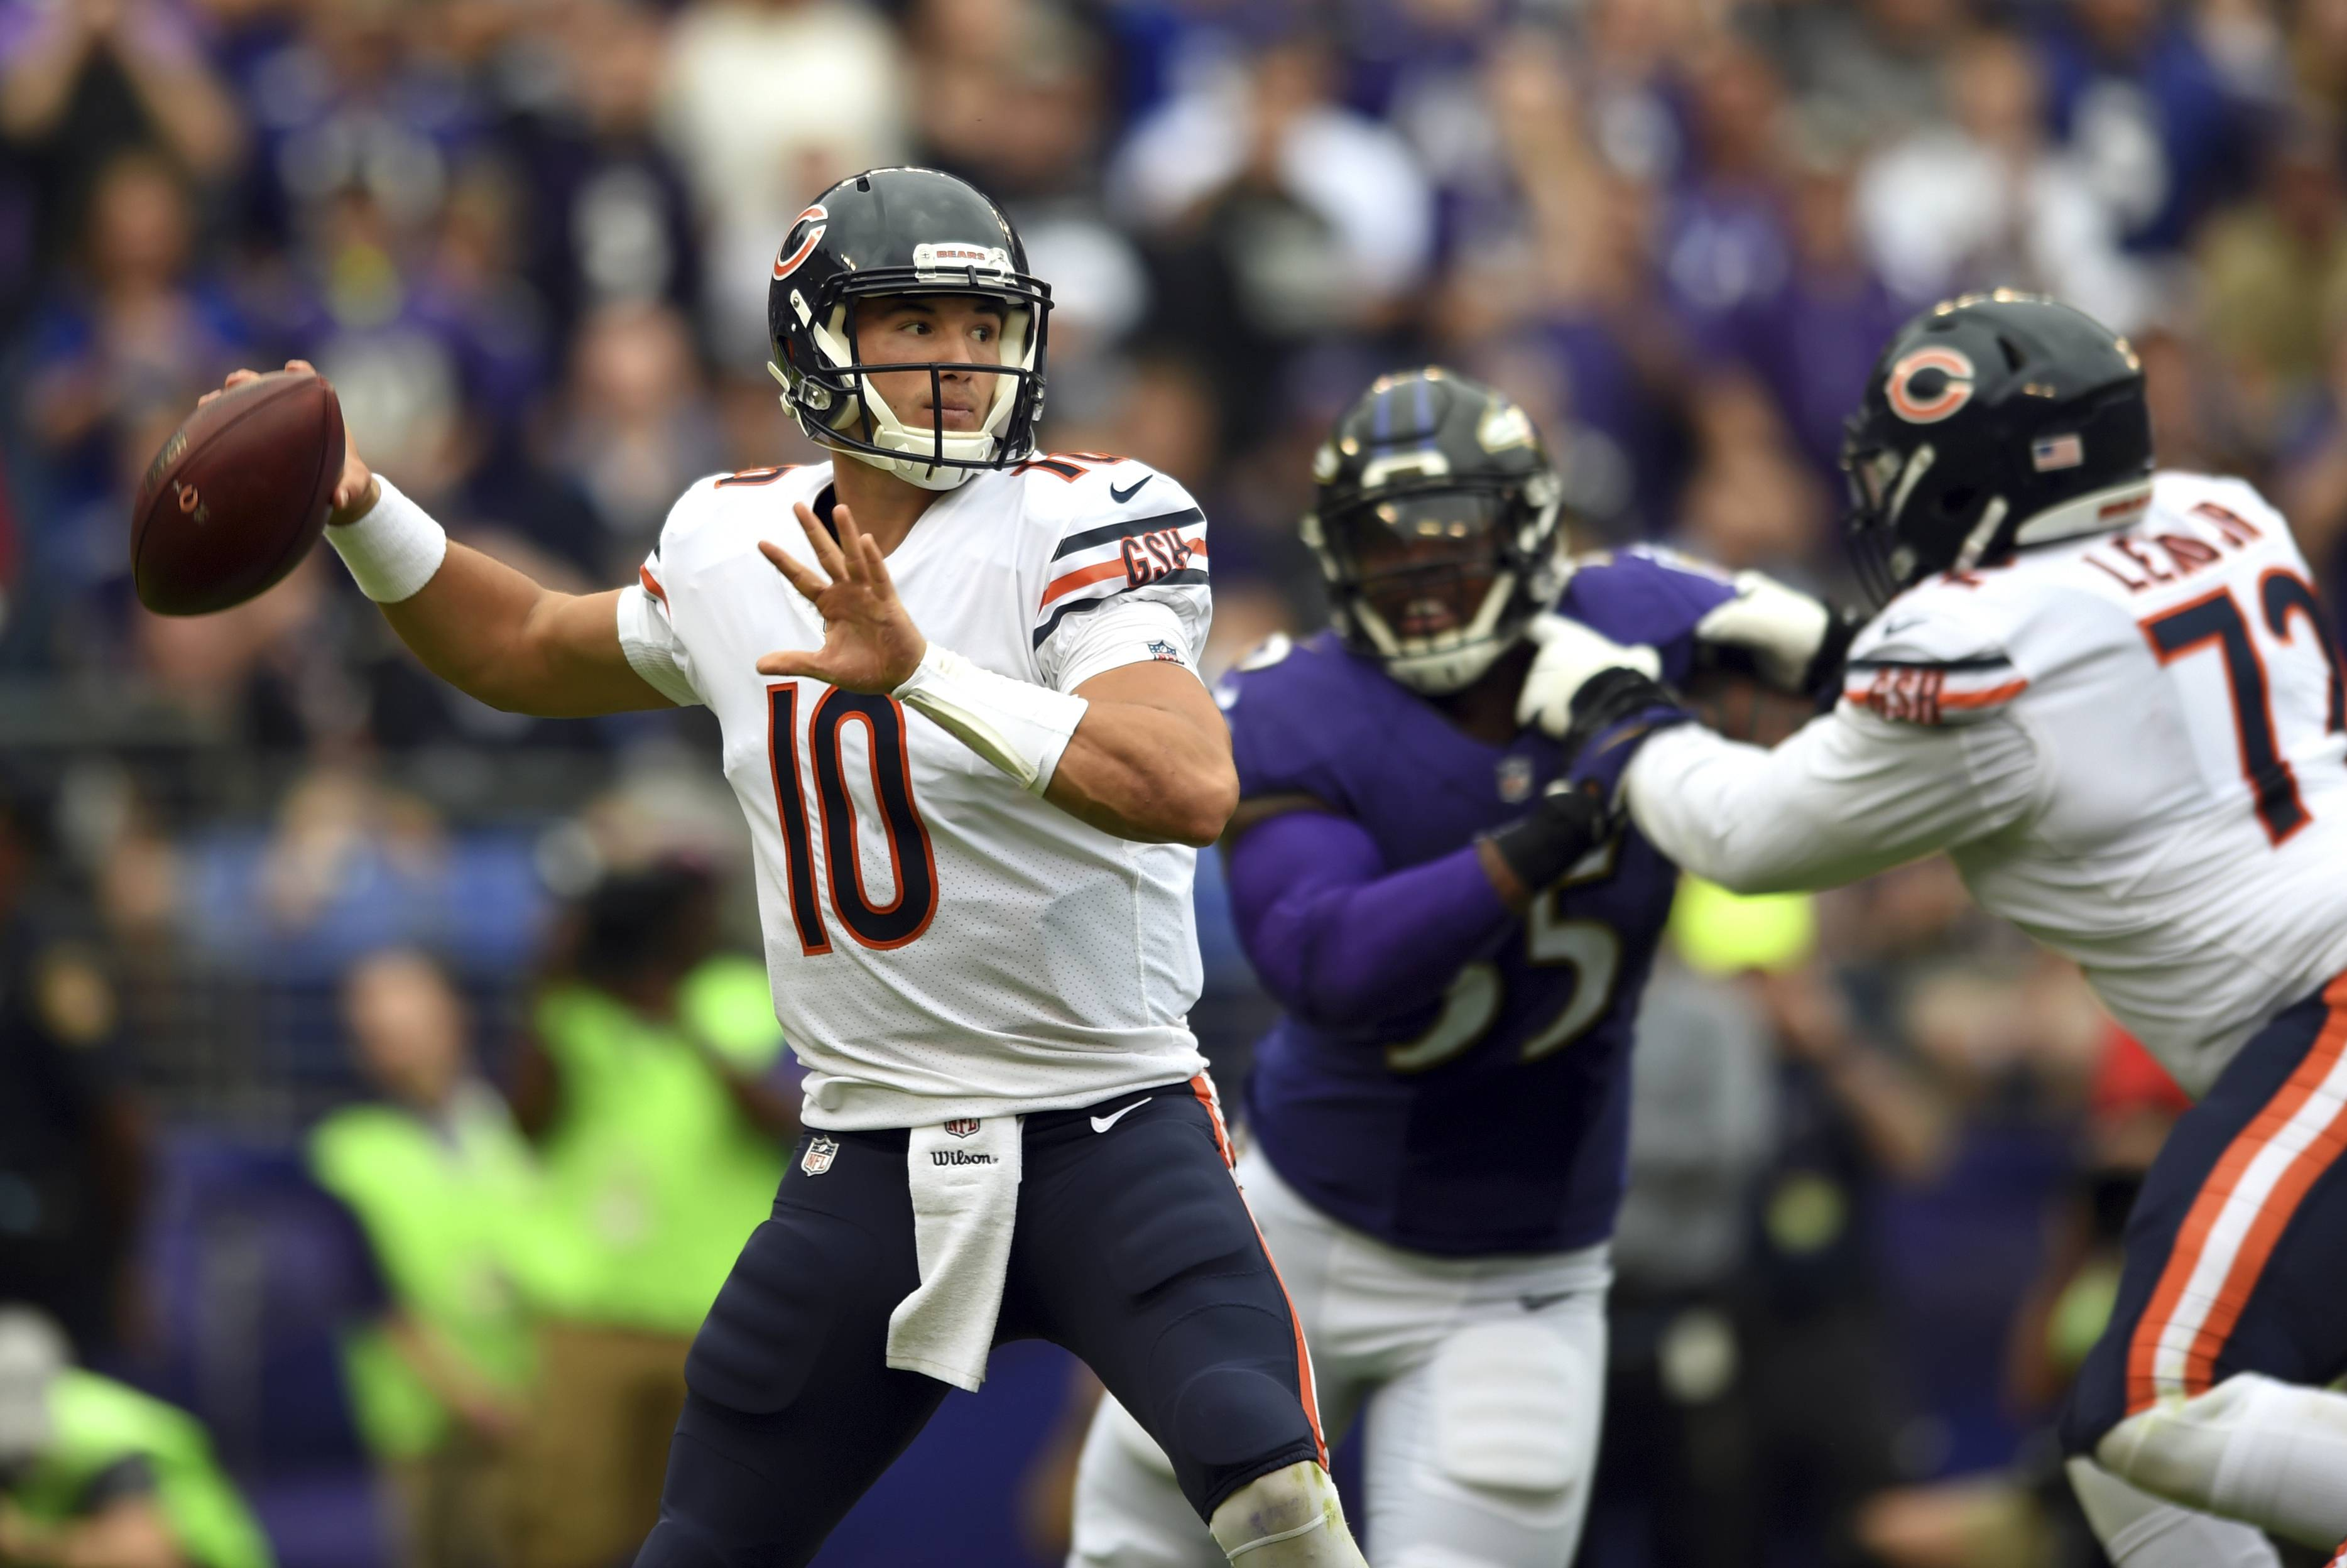 Chicago Bears win wild one in OT over Ravens